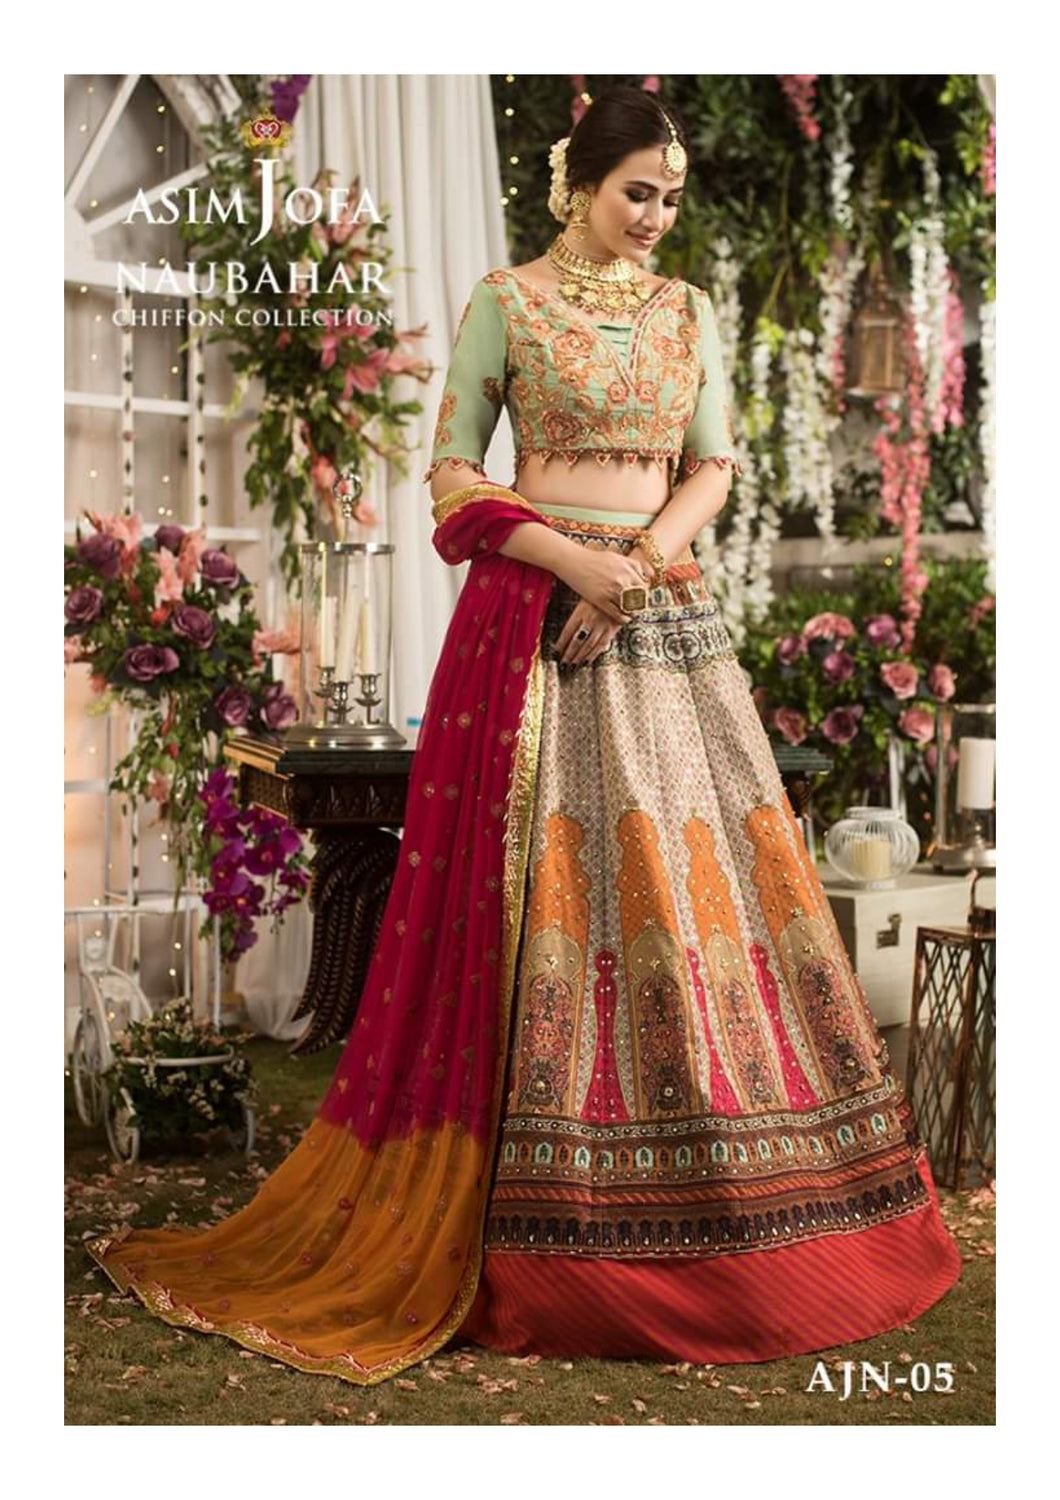 ASIM JOFA Naubahar Chiffon Collection 2020 - AJN-05 online Pakistani designer dress Anarkali Suits Party Werar Indian Dresses Pakistani Dresses Eid dresses online shoppingReady made Pakistani clothes UK Eid dresses UK online Eid dresses online shopping readymade eid suits uk eid suits 2019 uk pakistani eid suits uk eid suits 2020 uk Eid dresses 2020 UK